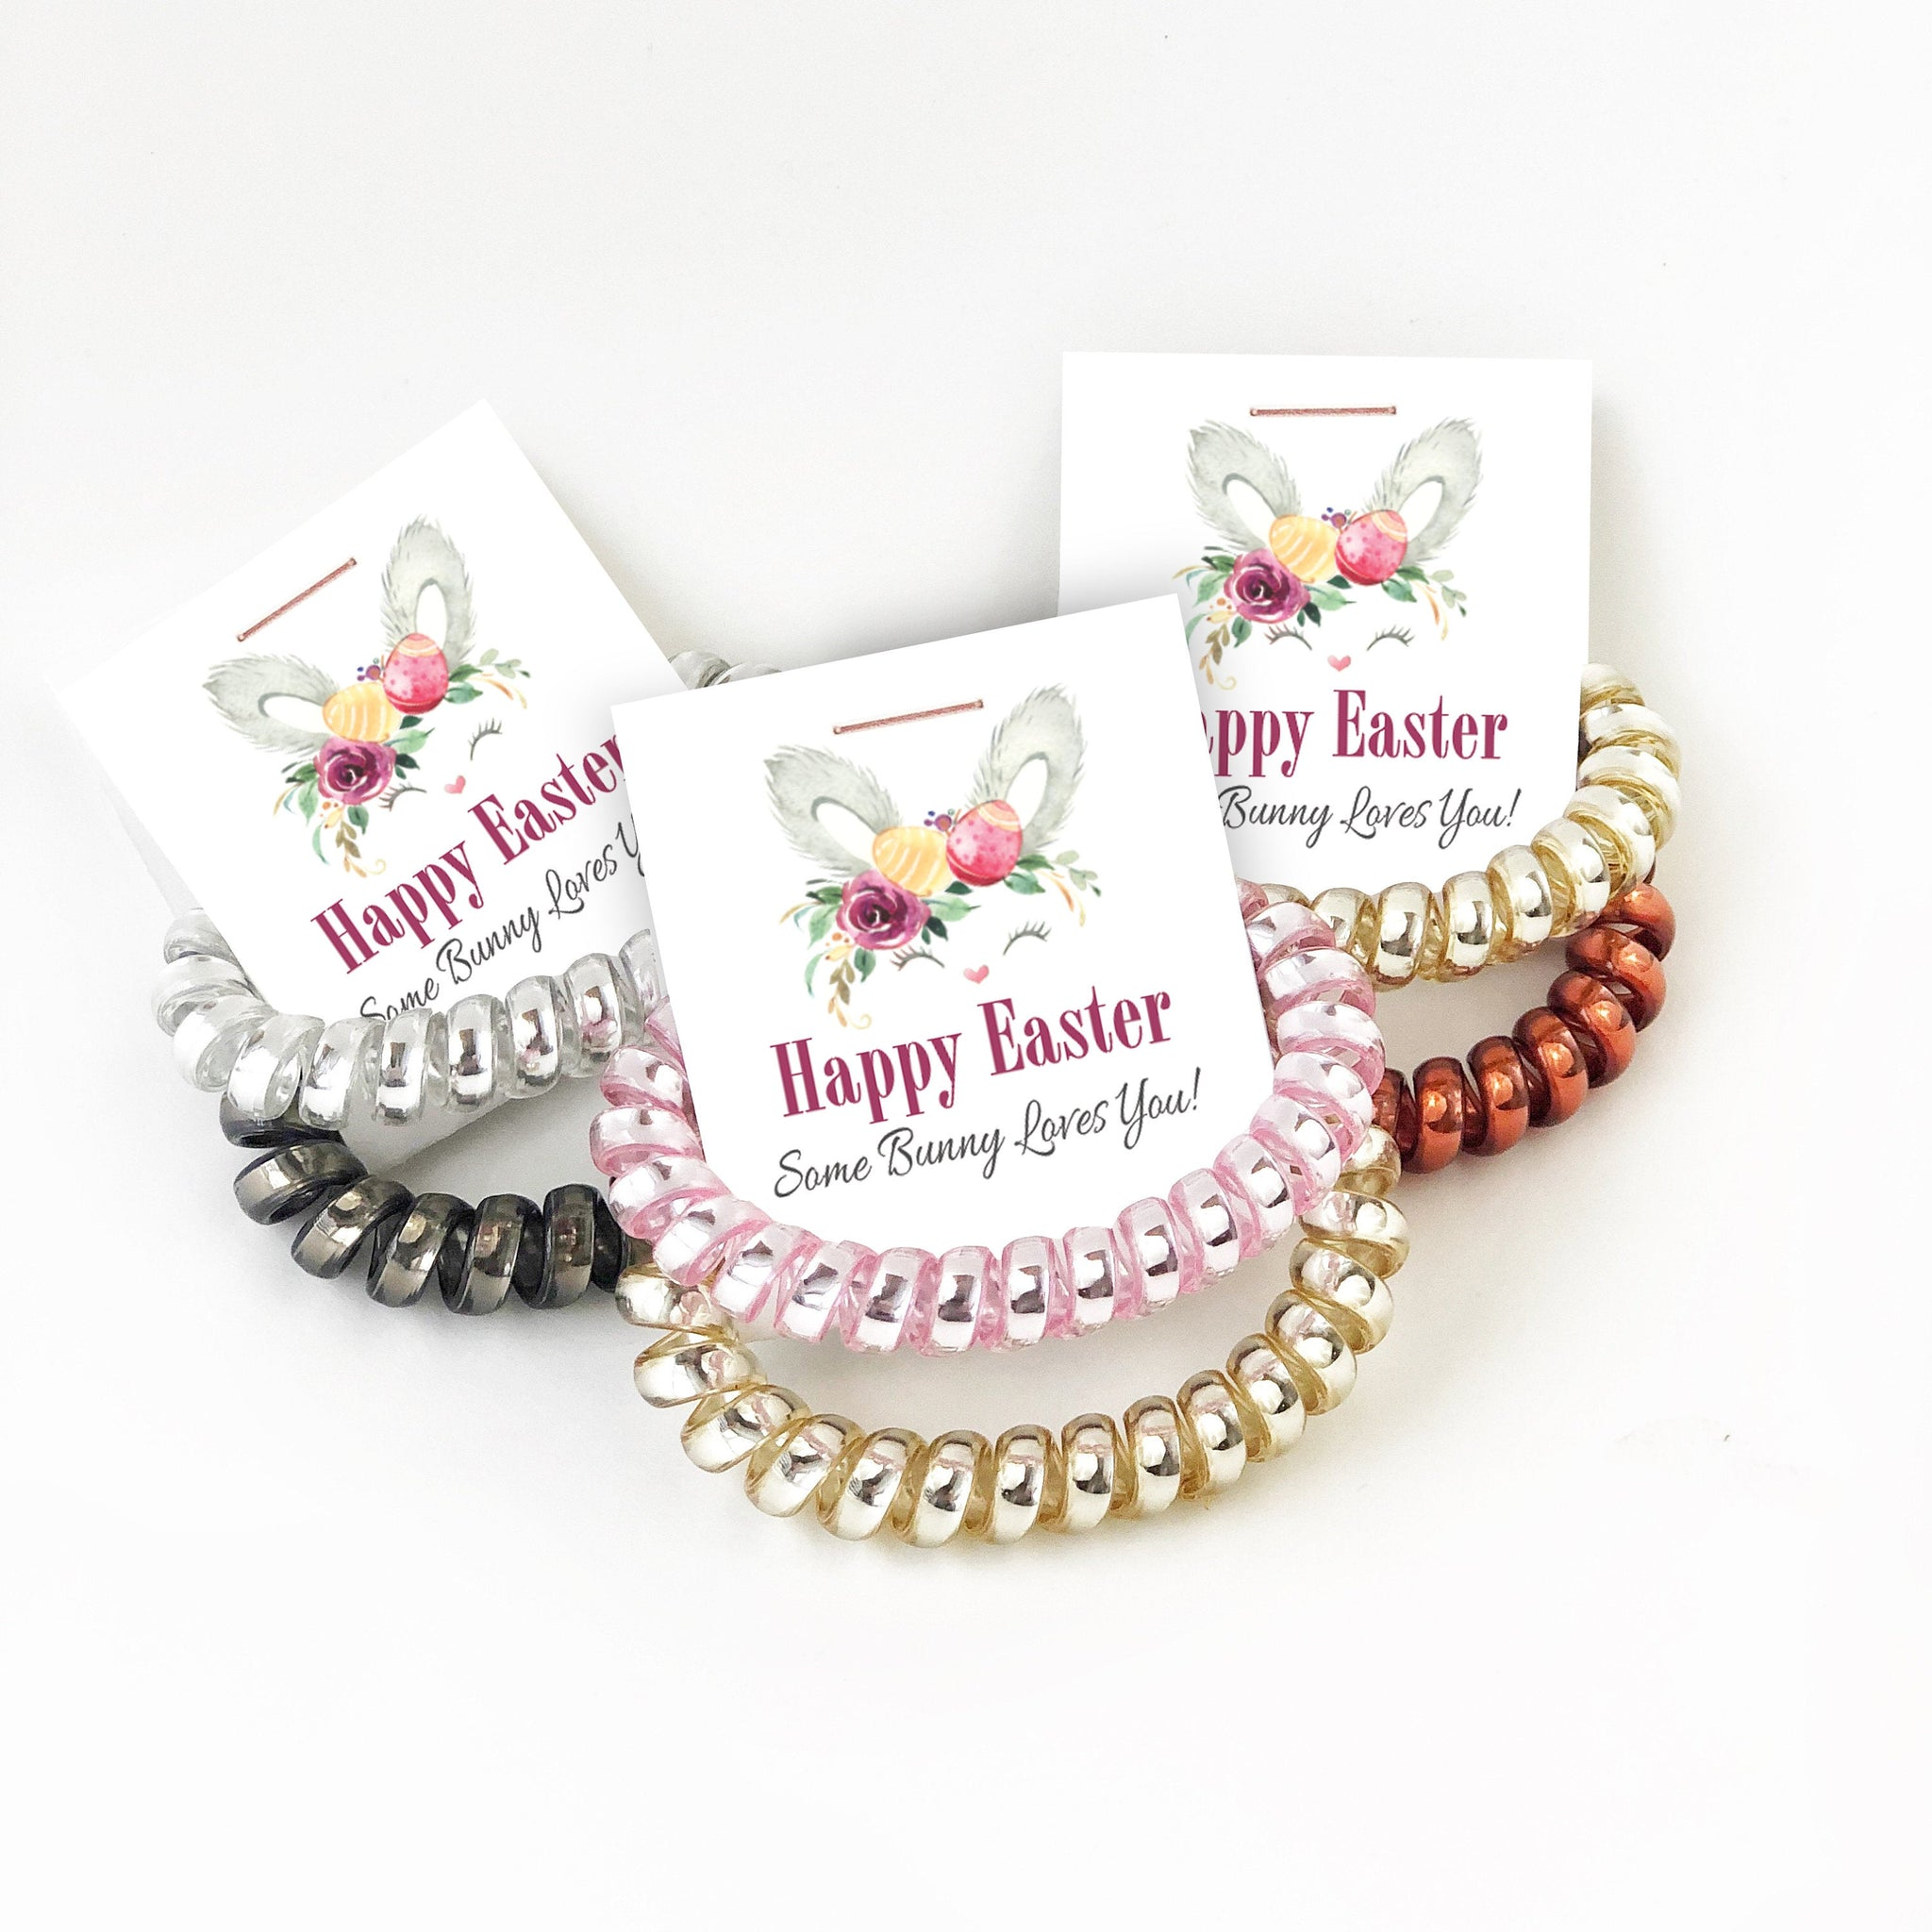 Easter Favors, Spiral Hair Ties, Easter Gift Ideas, Easter Basket Stuffers - @PlumPolkaDot